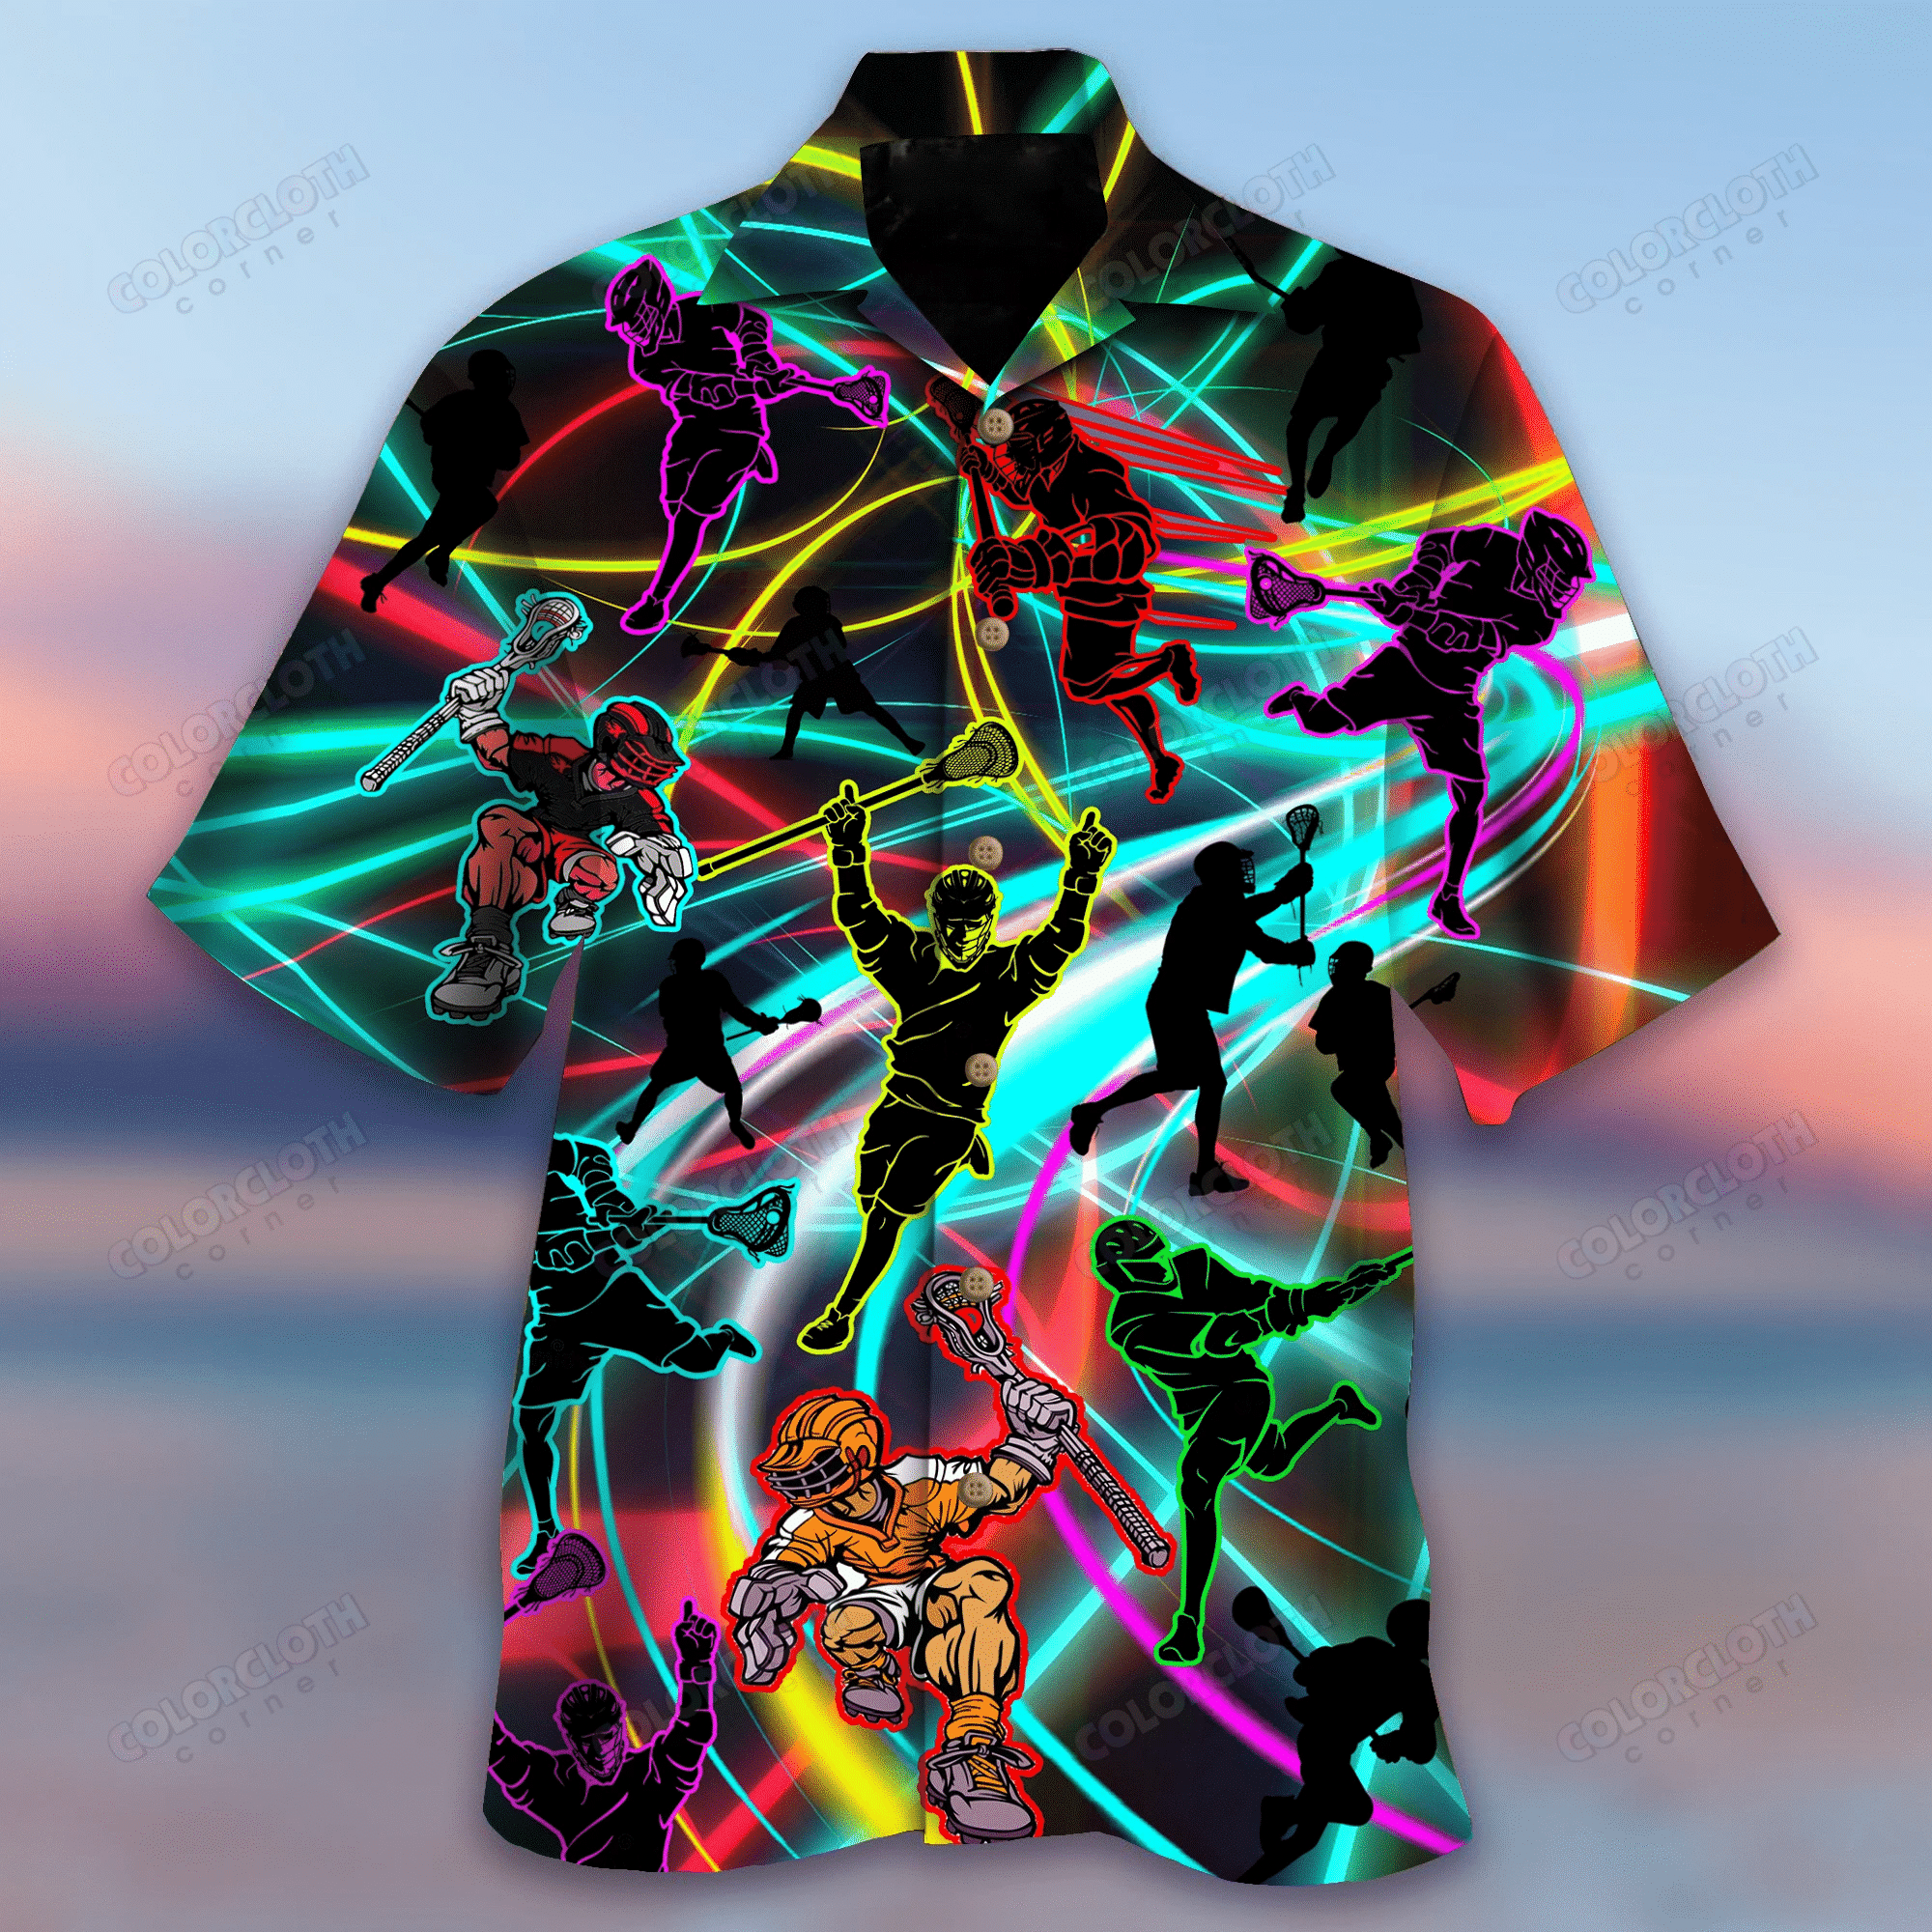 Stick Together With Lacrosse Hawaiian Shirt   For Men & Women   Adult   HW5353